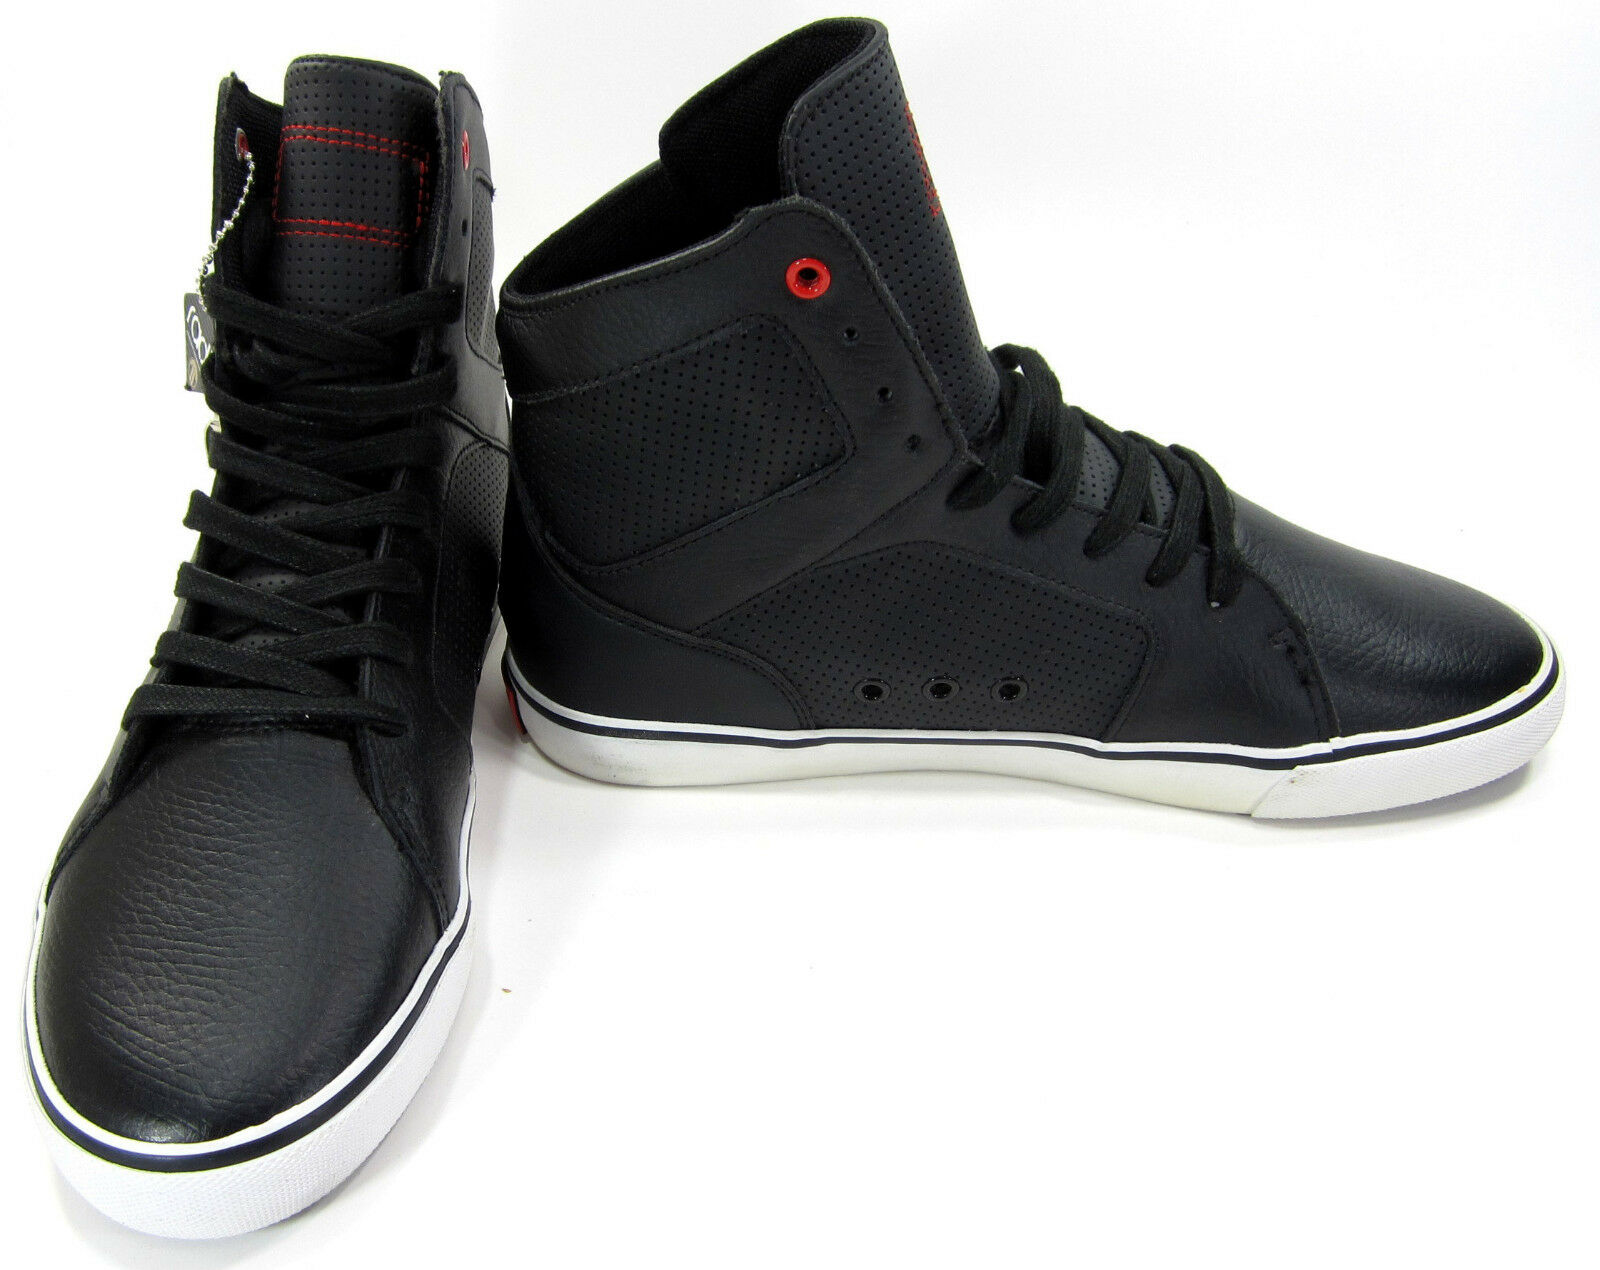 36fd1e5107f1 Radii Radii Radii Shoes Simple Leather Perforated Black White Sneakers Size  9.5 d366c4